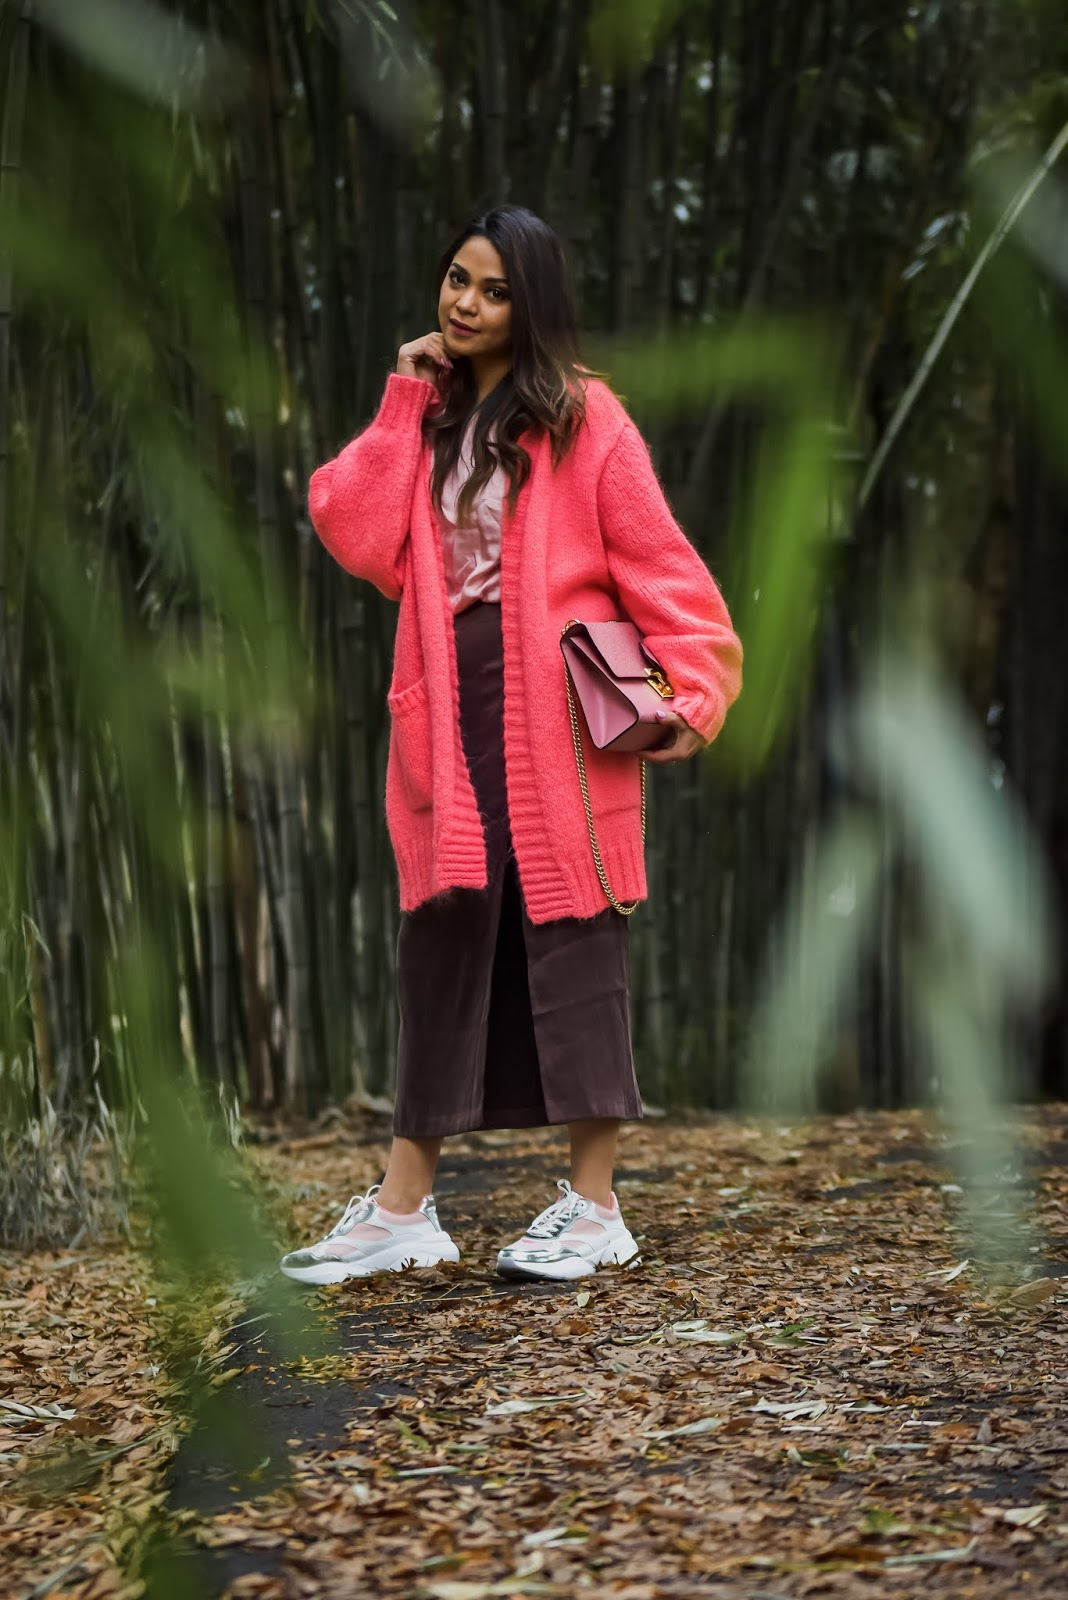 daddy sneakers, slit skirt, & other stories ksirt, street style, fashion, cardigan, saumya shiohare, myriad musings